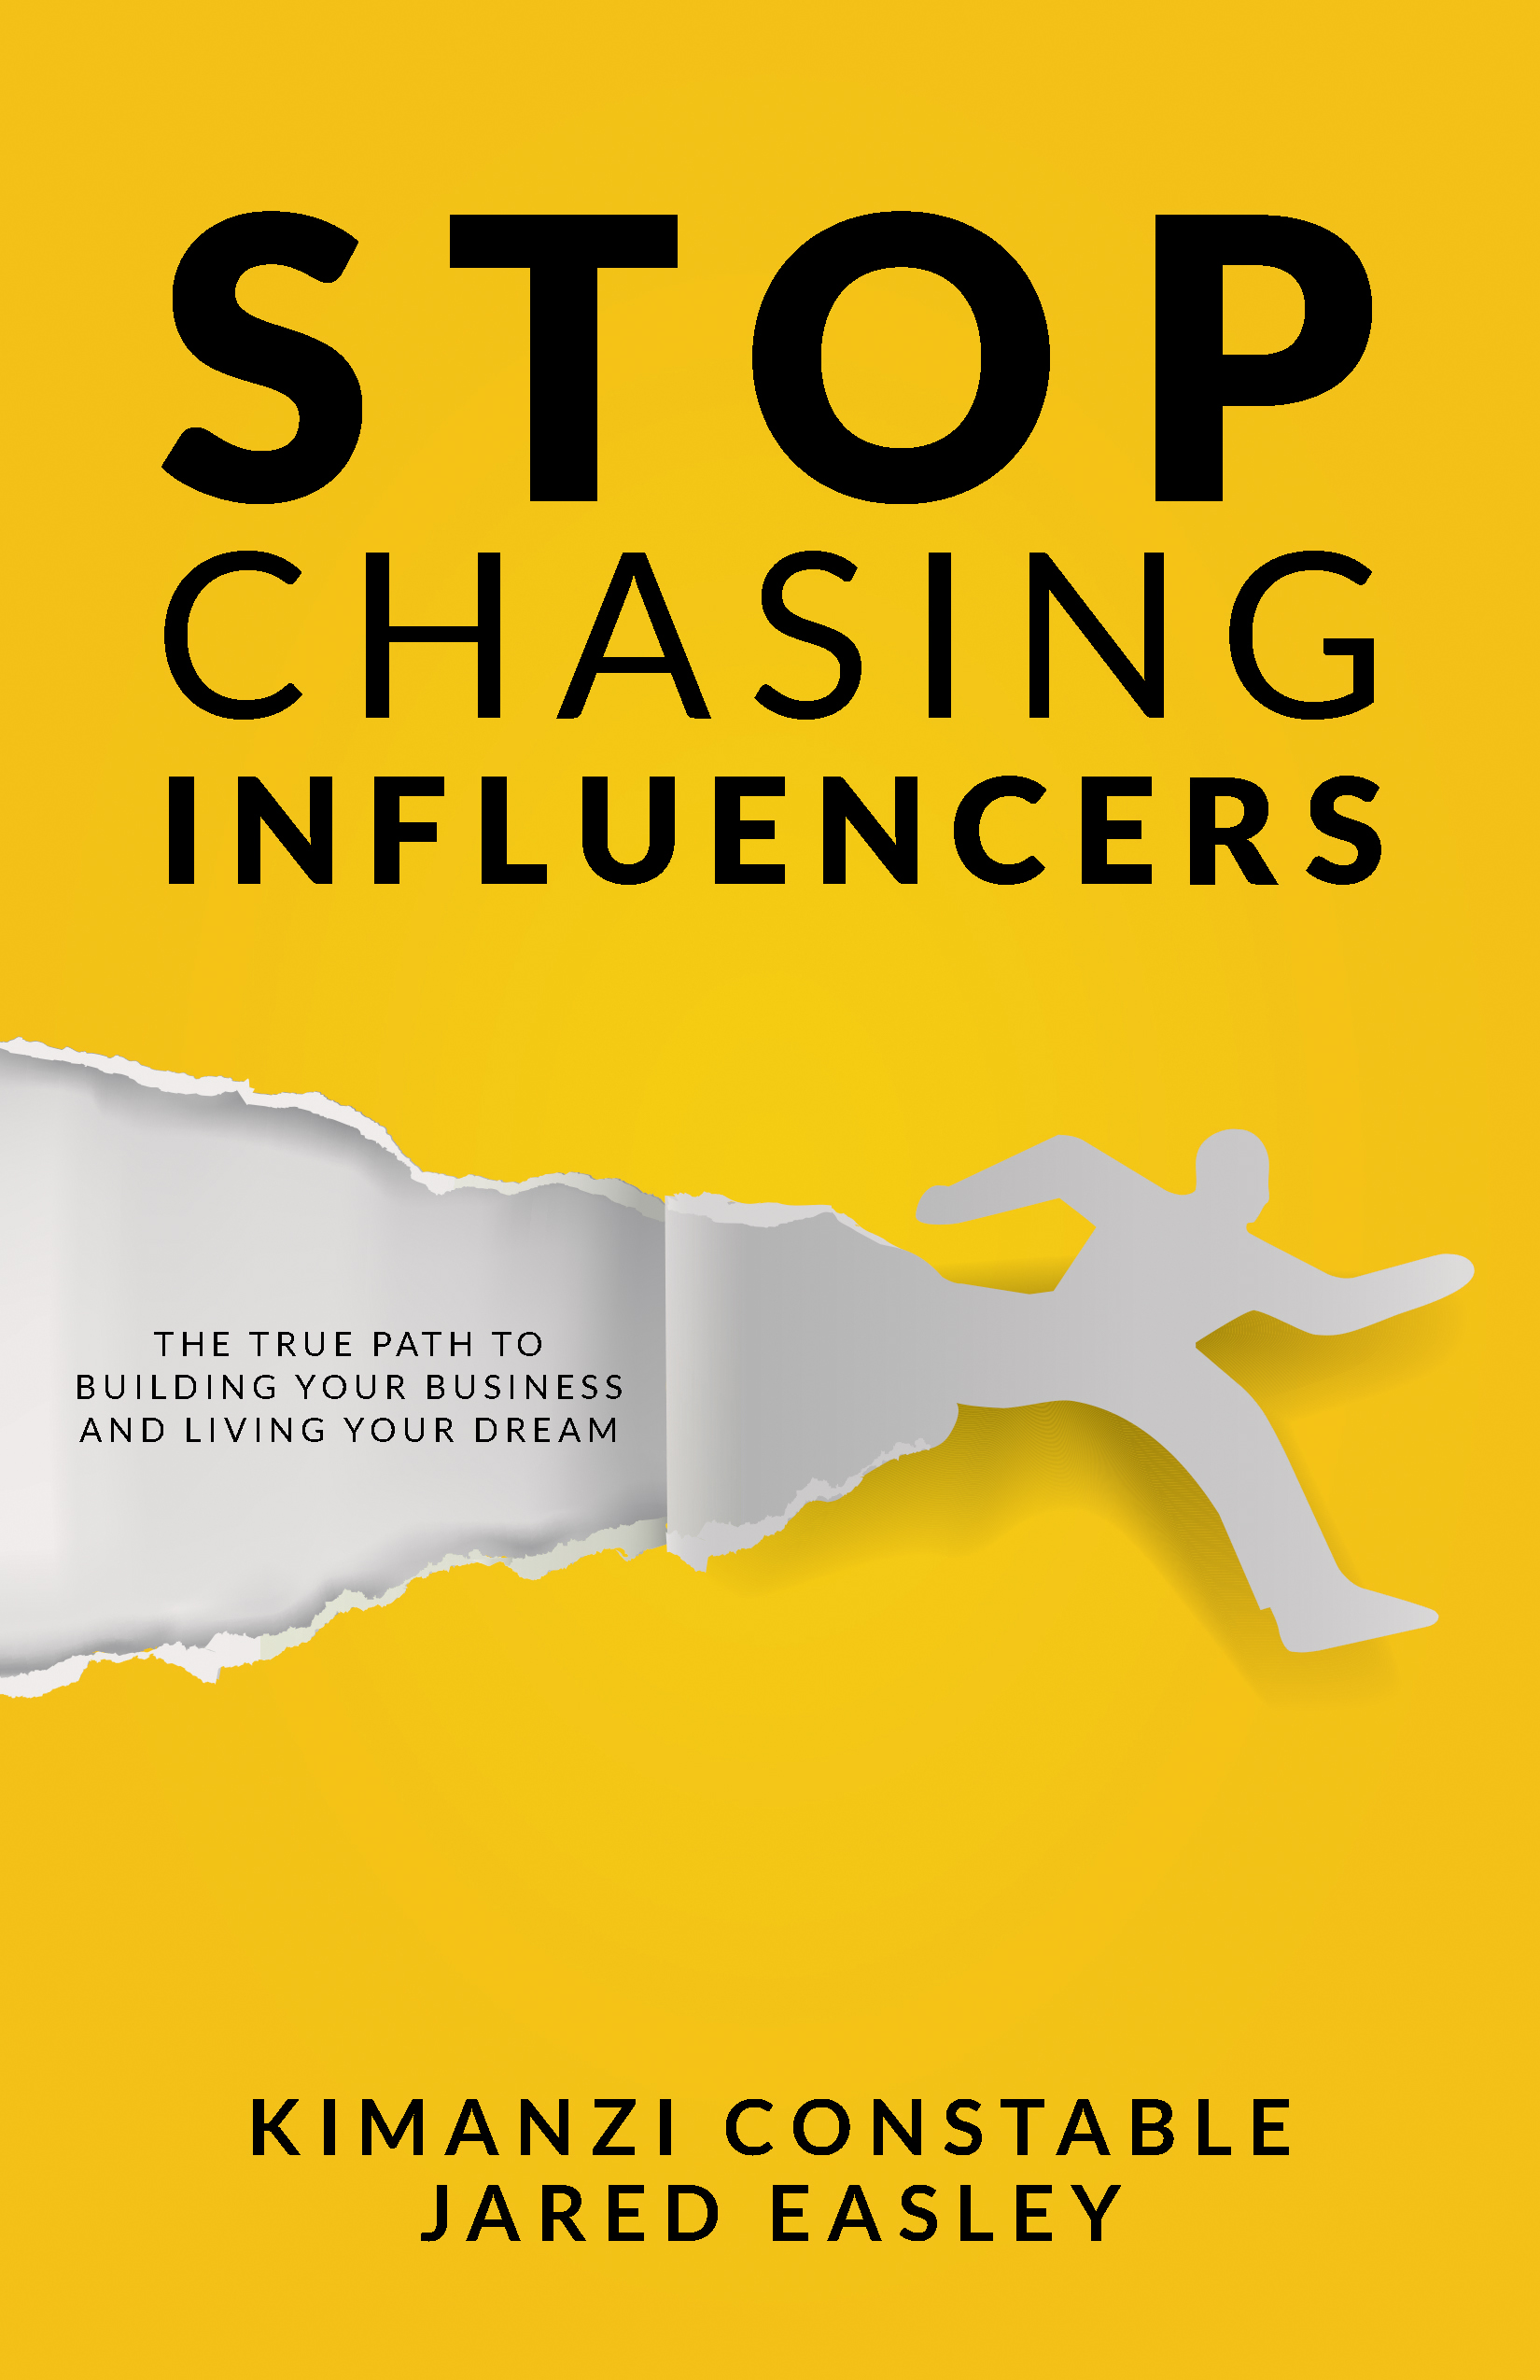 Stop Chasing Influencers - Kimanzi Constable and Jared Easley